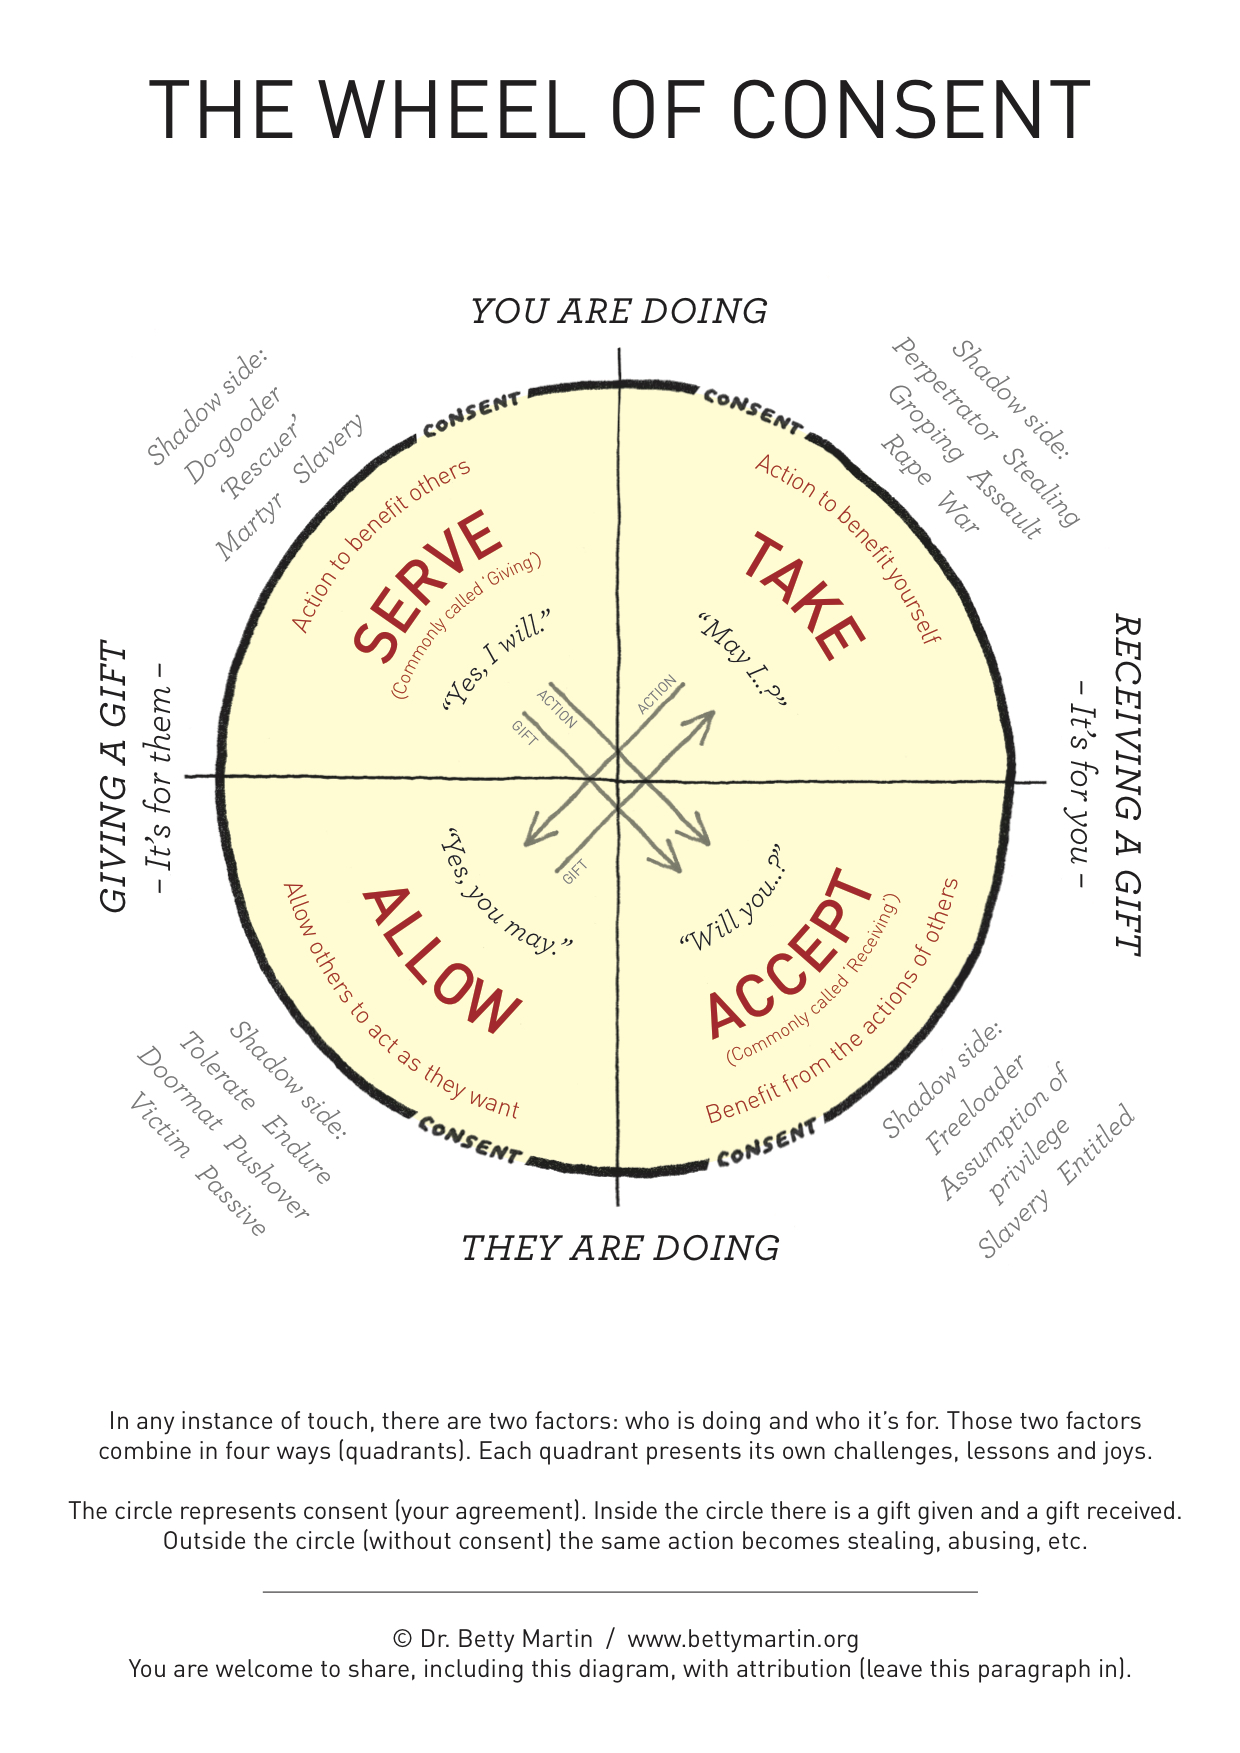 The Wheel of Consent